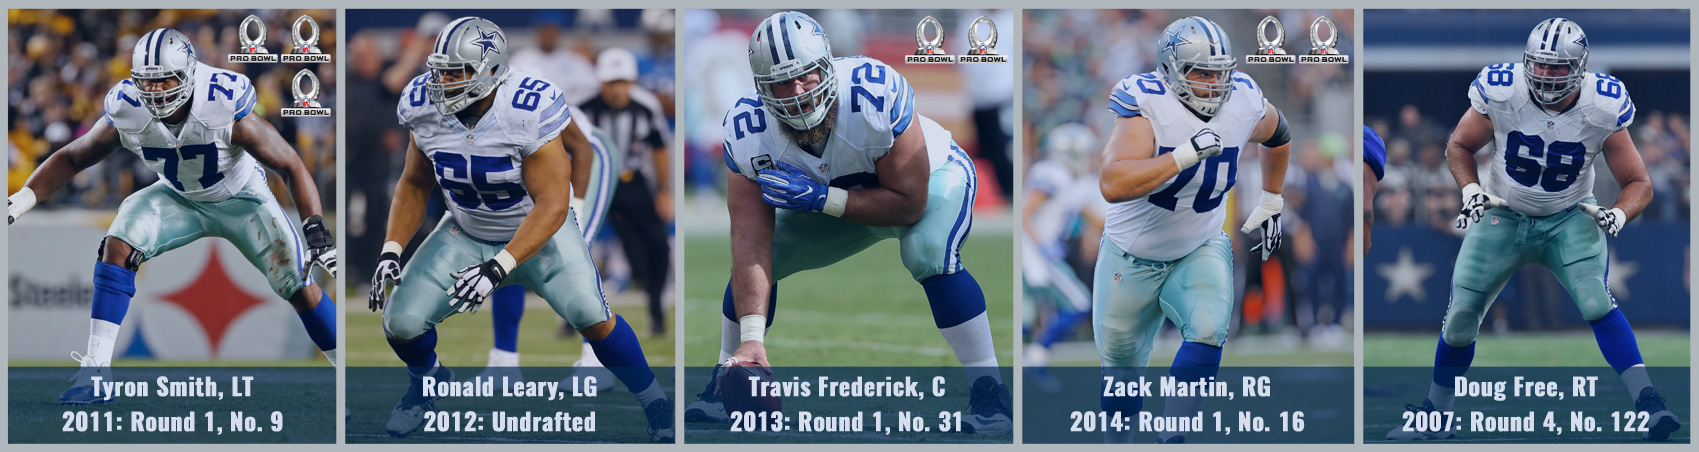 Offensive Lines